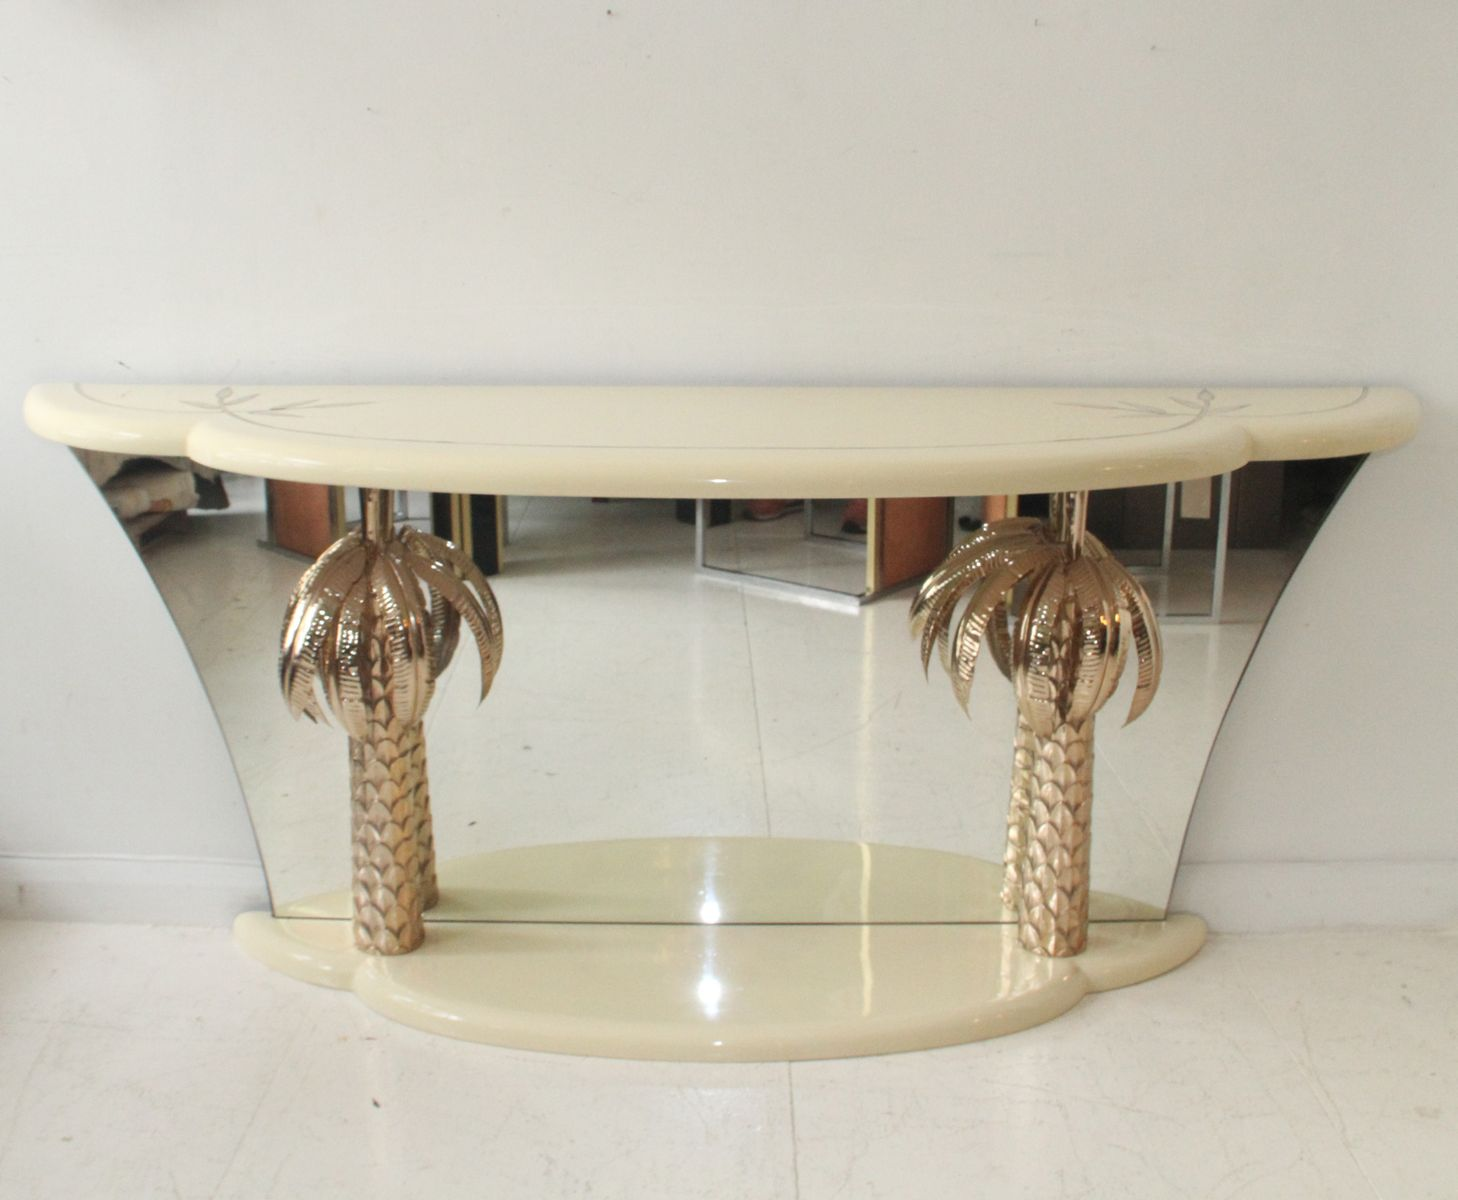 Vintage italian lacquer and brass palm tree console table for sale vintage italian lacquer and brass palm tree console table geotapseo Choice Image